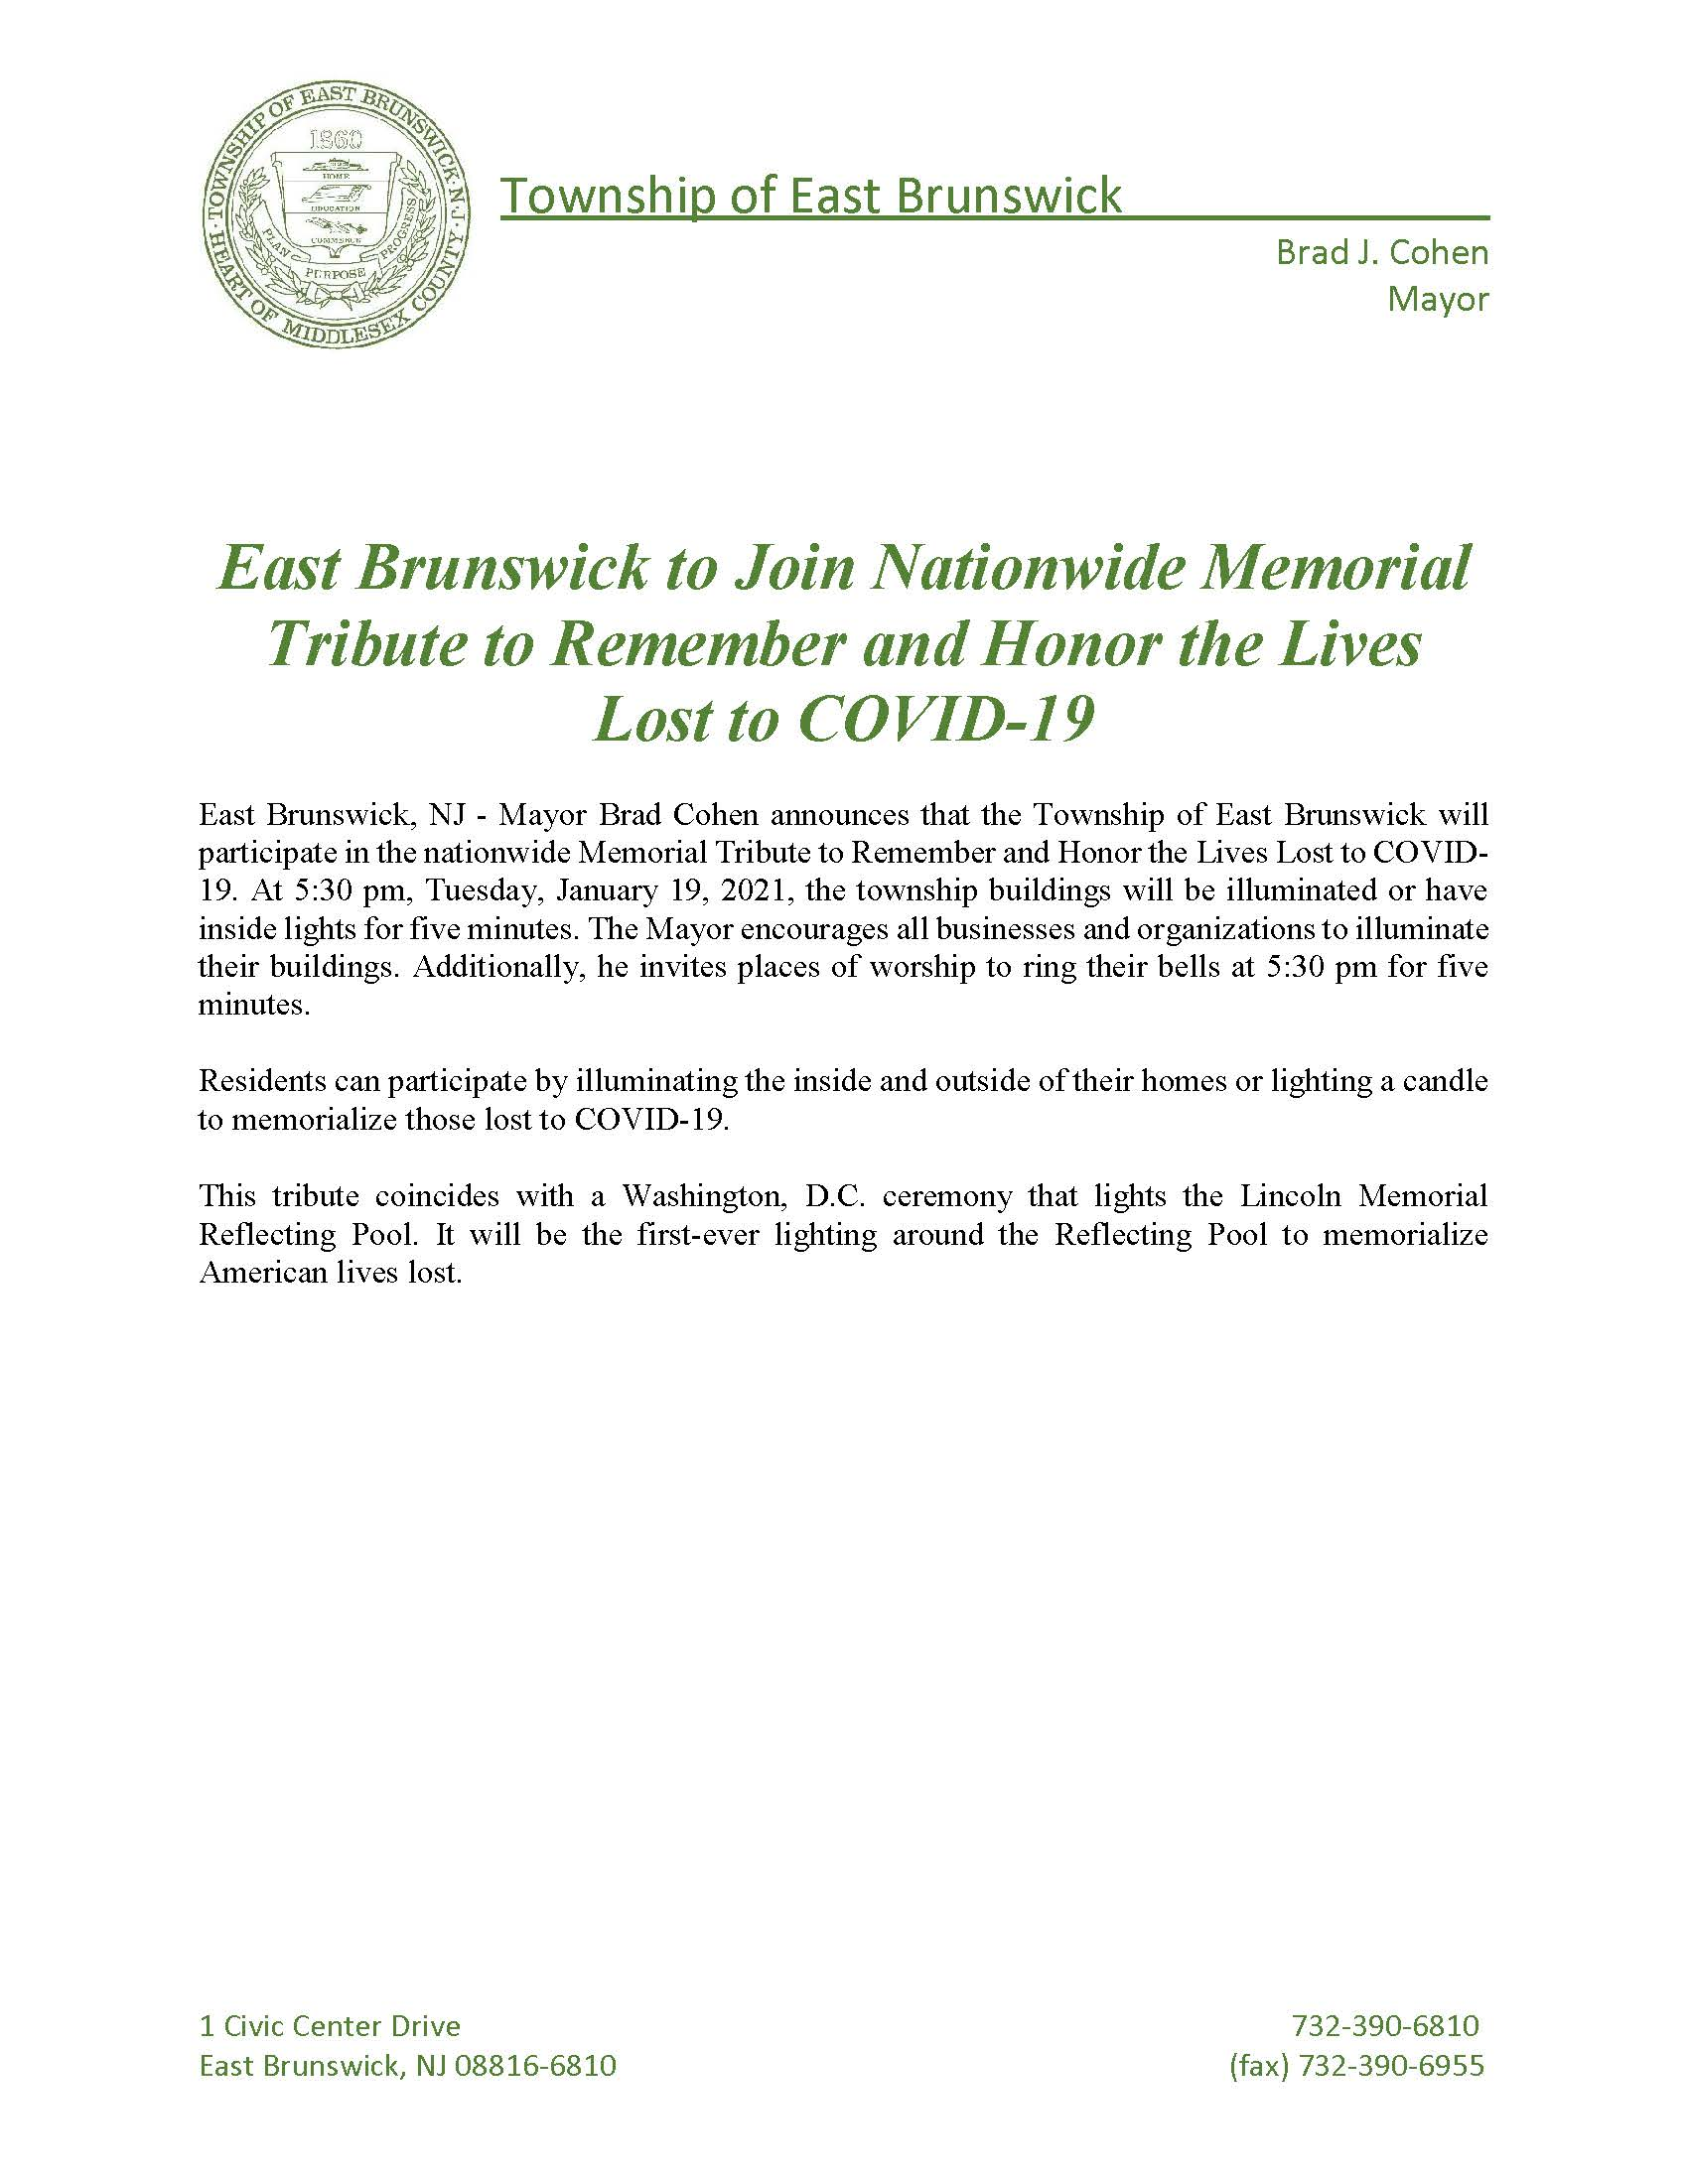 Mayor Statement on COVID Memorial